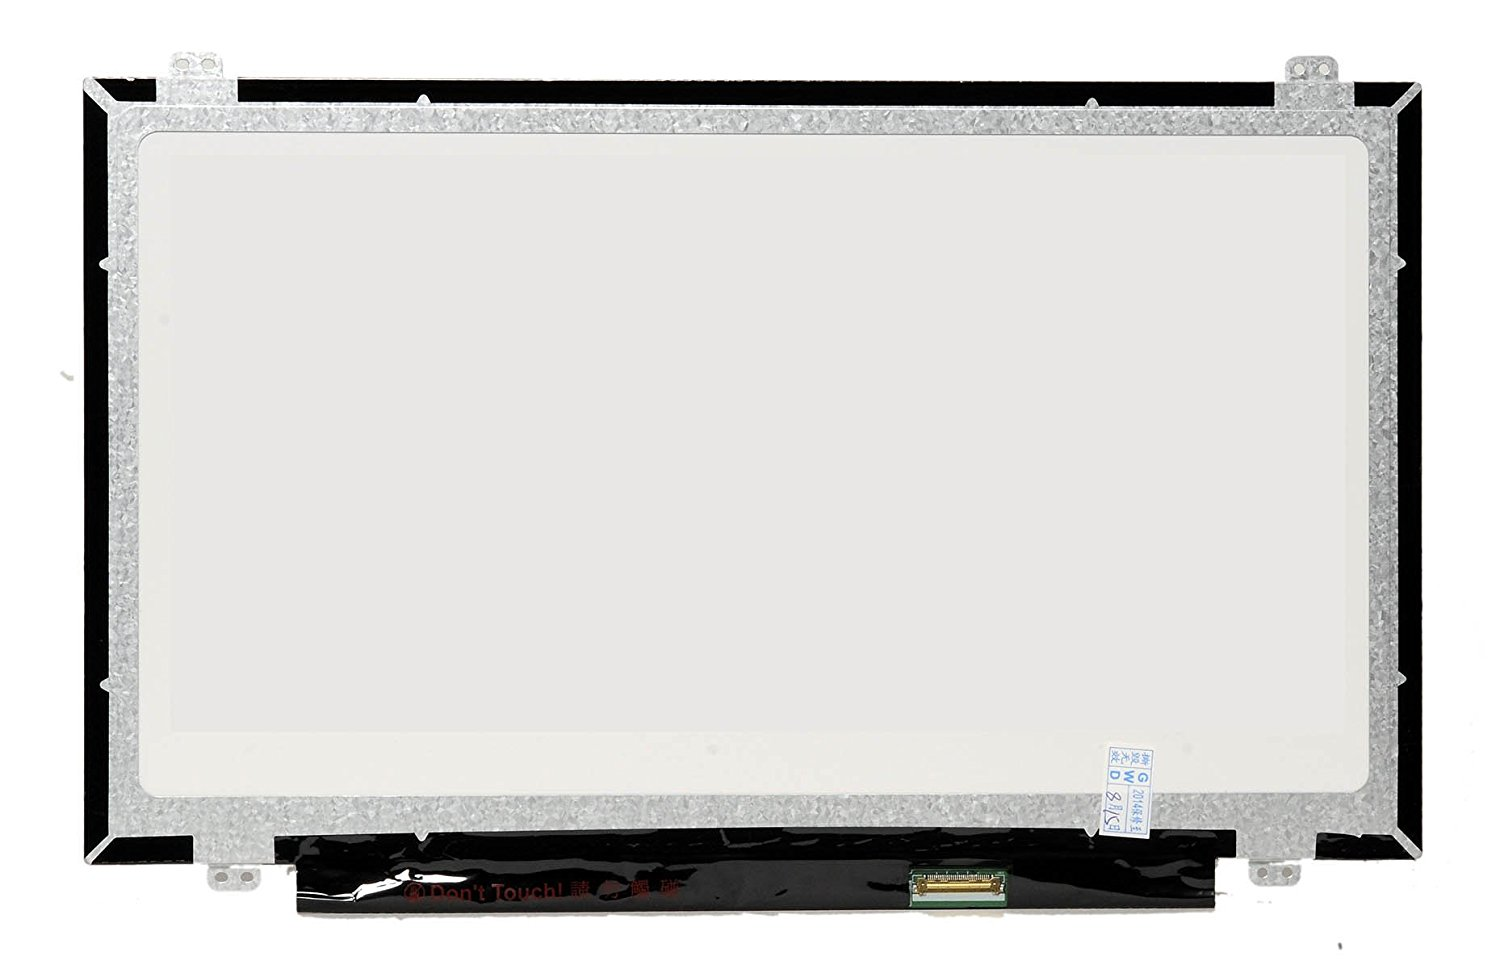 QuYing Laptop LCD Screen For HP-Compaq HP Envy 4 4-1000 Series hp compaq presario cq57 383er qh812ea в рассрочку минск